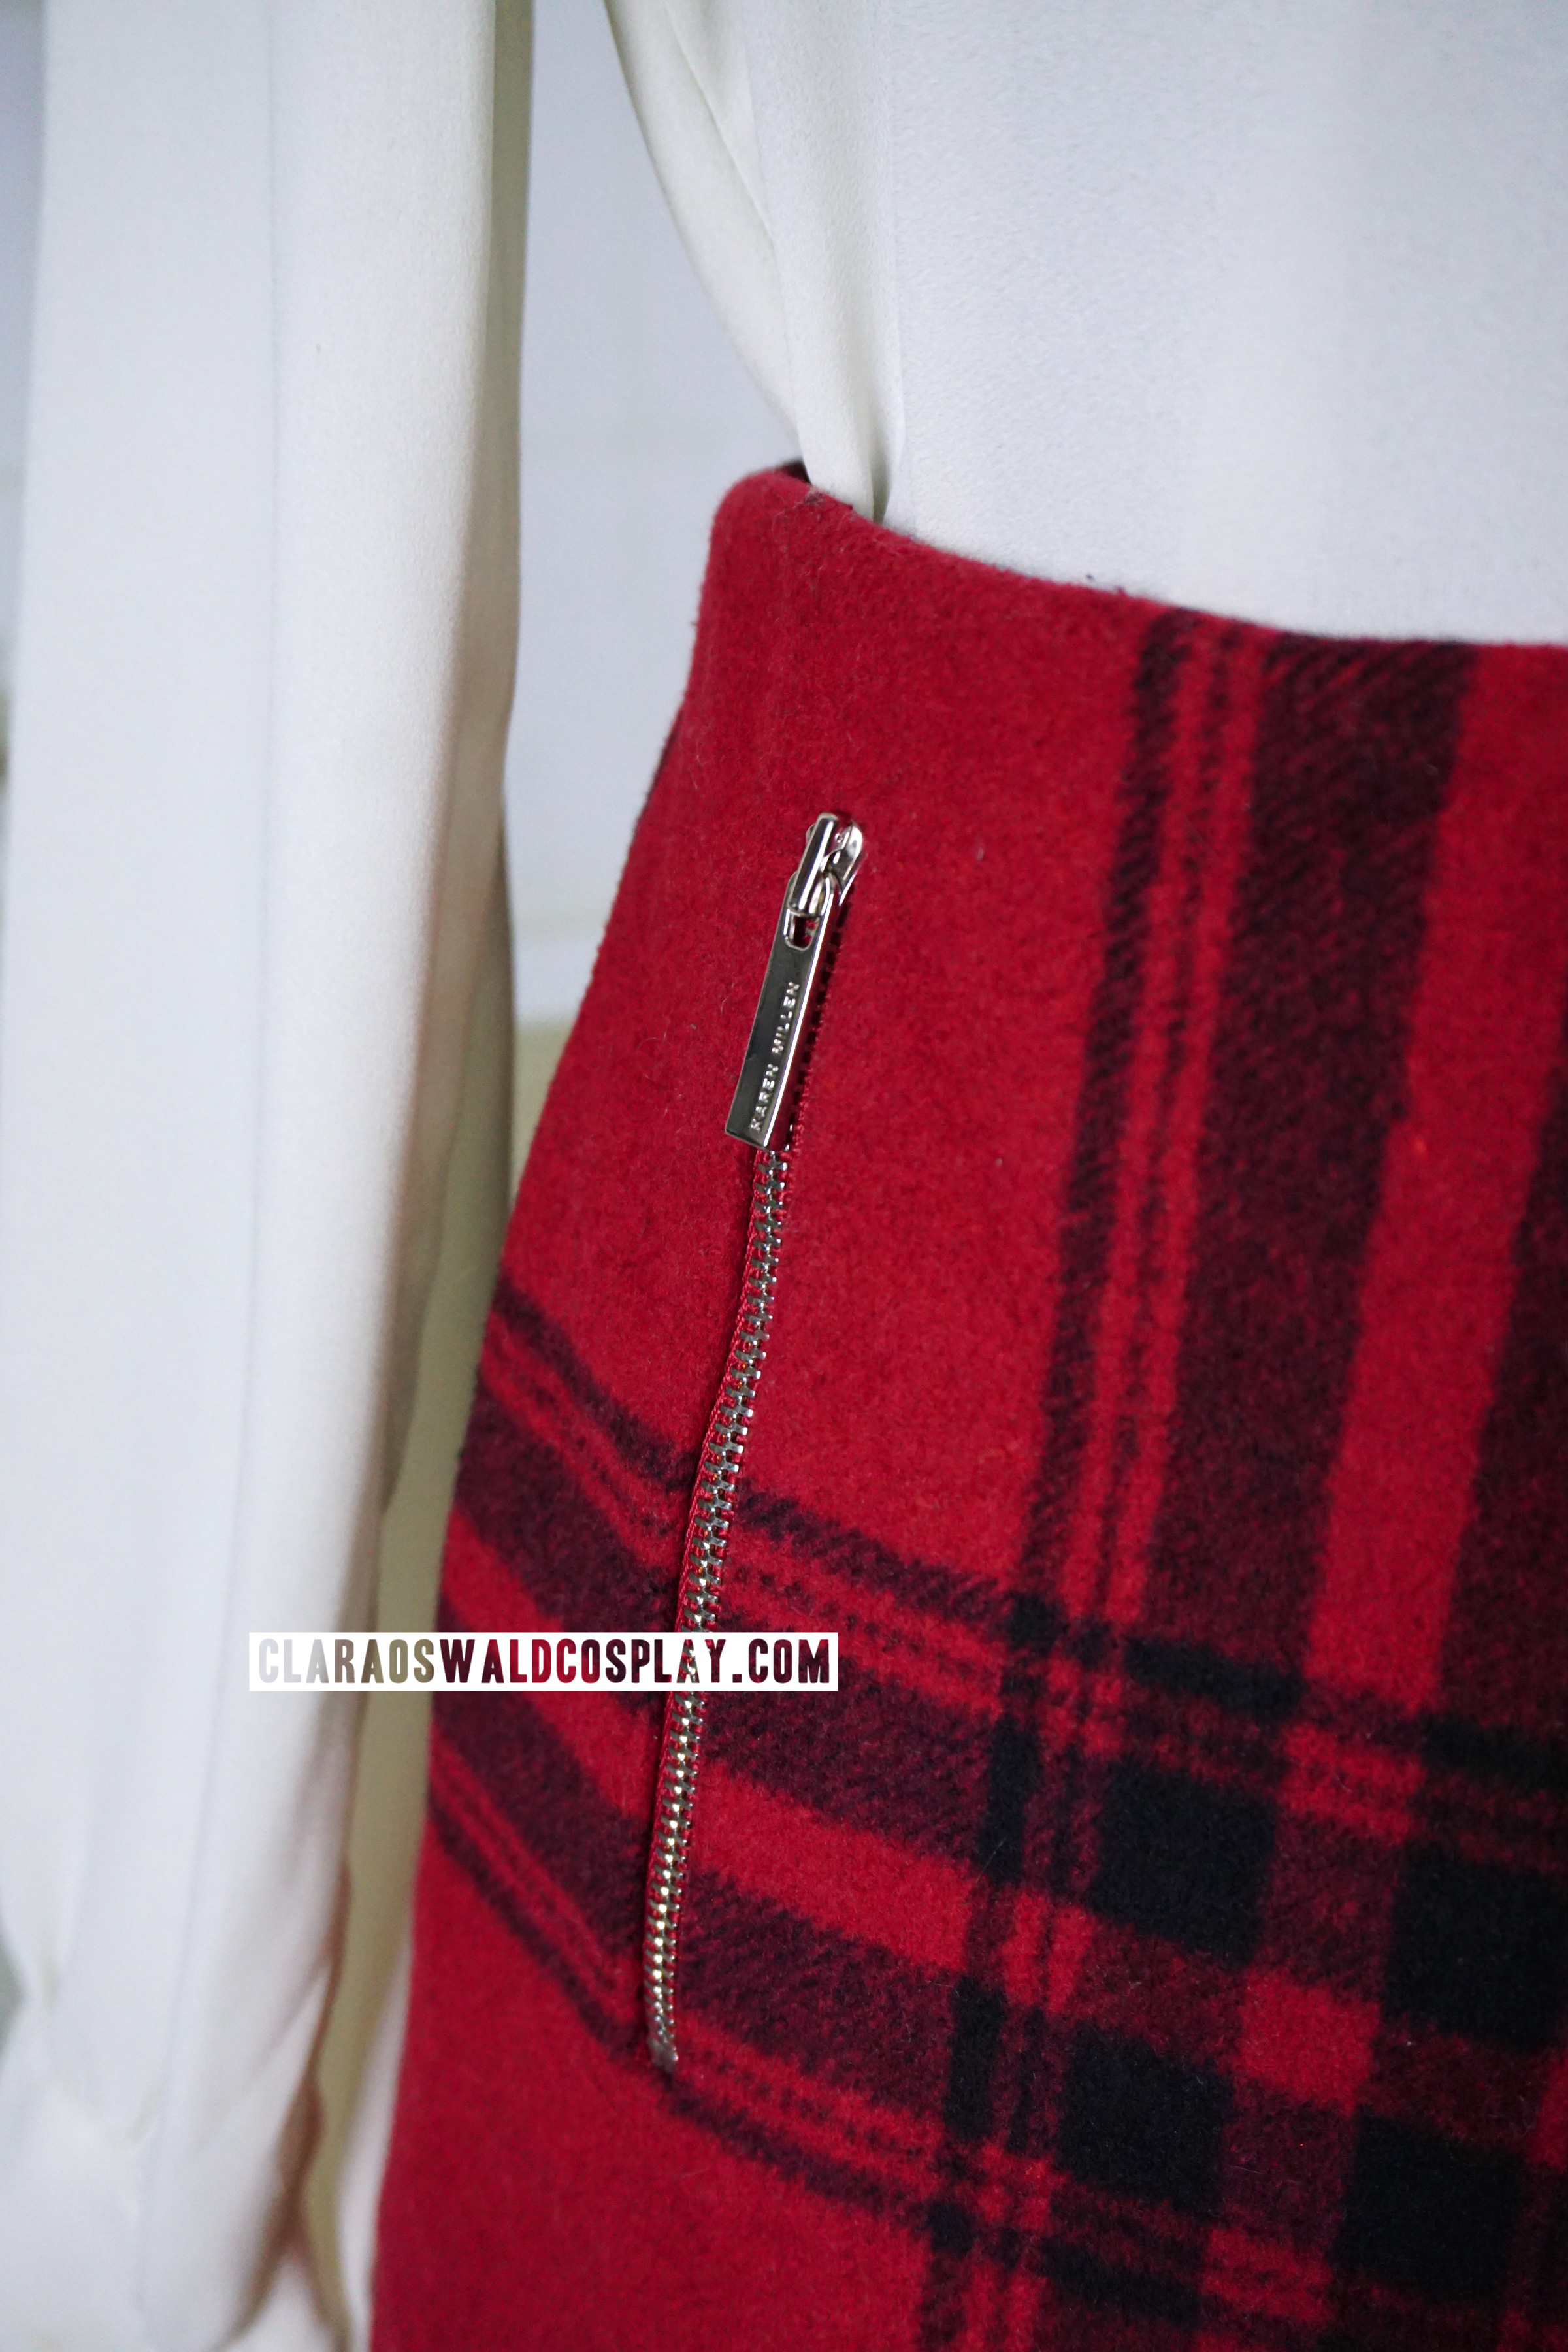 Clara Oswald's Karen Millen Masculine Check Skirt comes with a practical pocket that can be zipped up